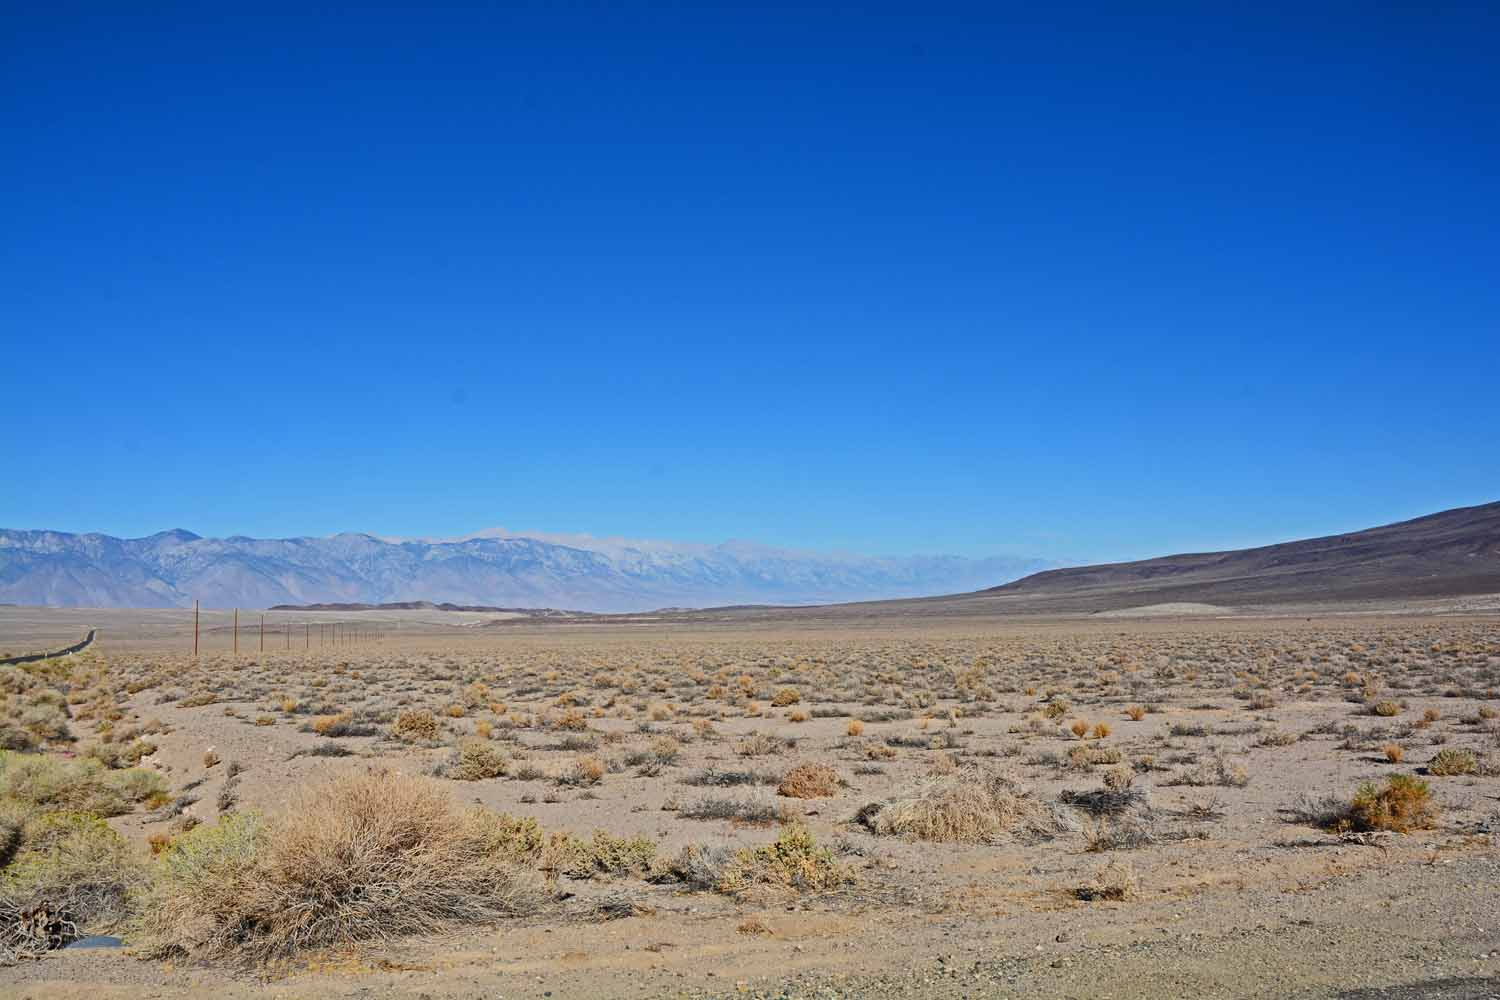 This is Death Valley